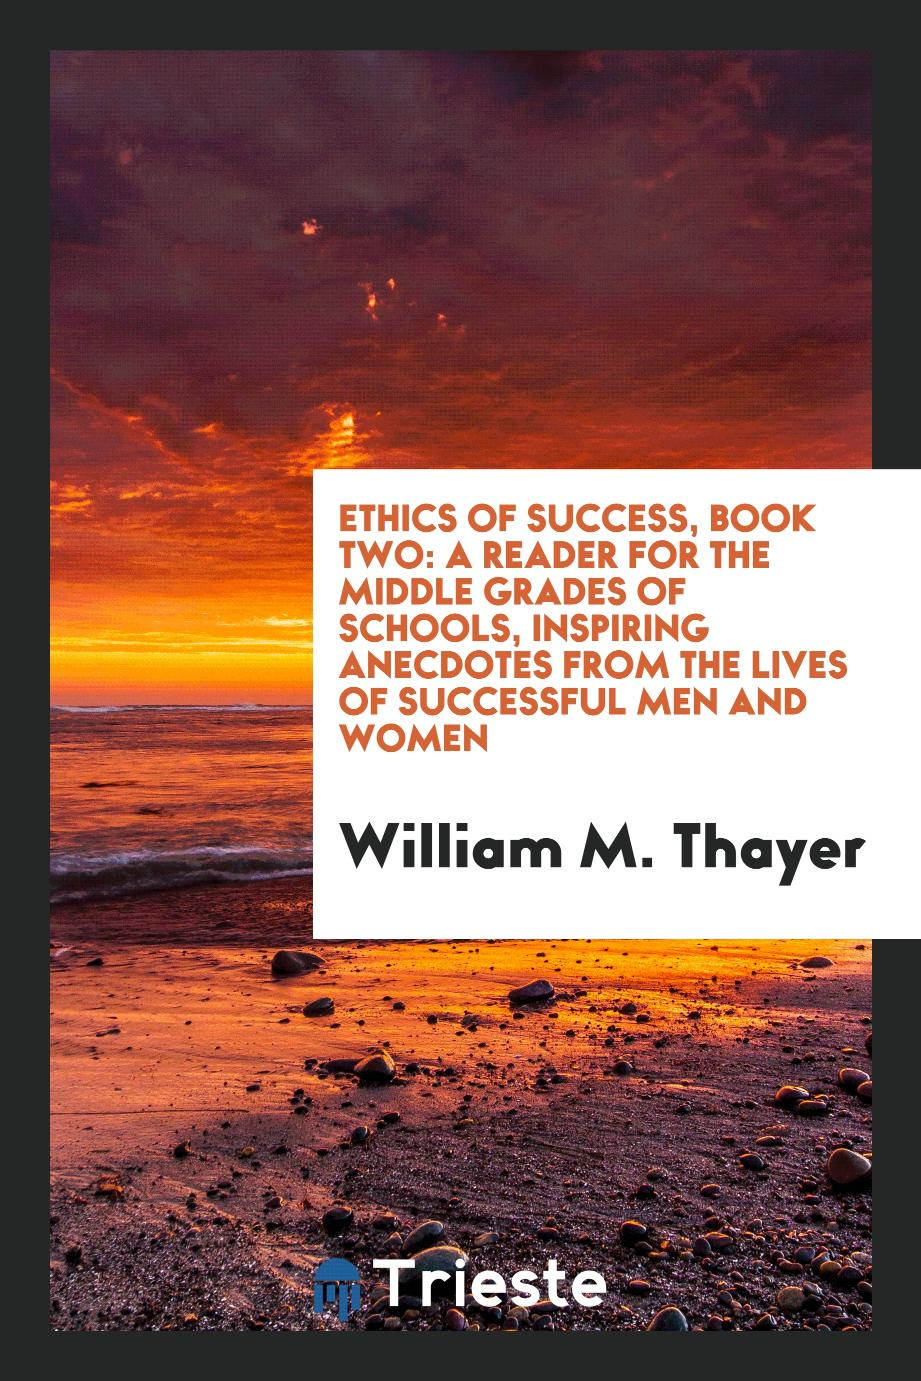 Ethics of Success, Book Two: A Reader for the Middle Grades of Schools, Inspiring Anecdotes from the Lives of Successful Men and Women